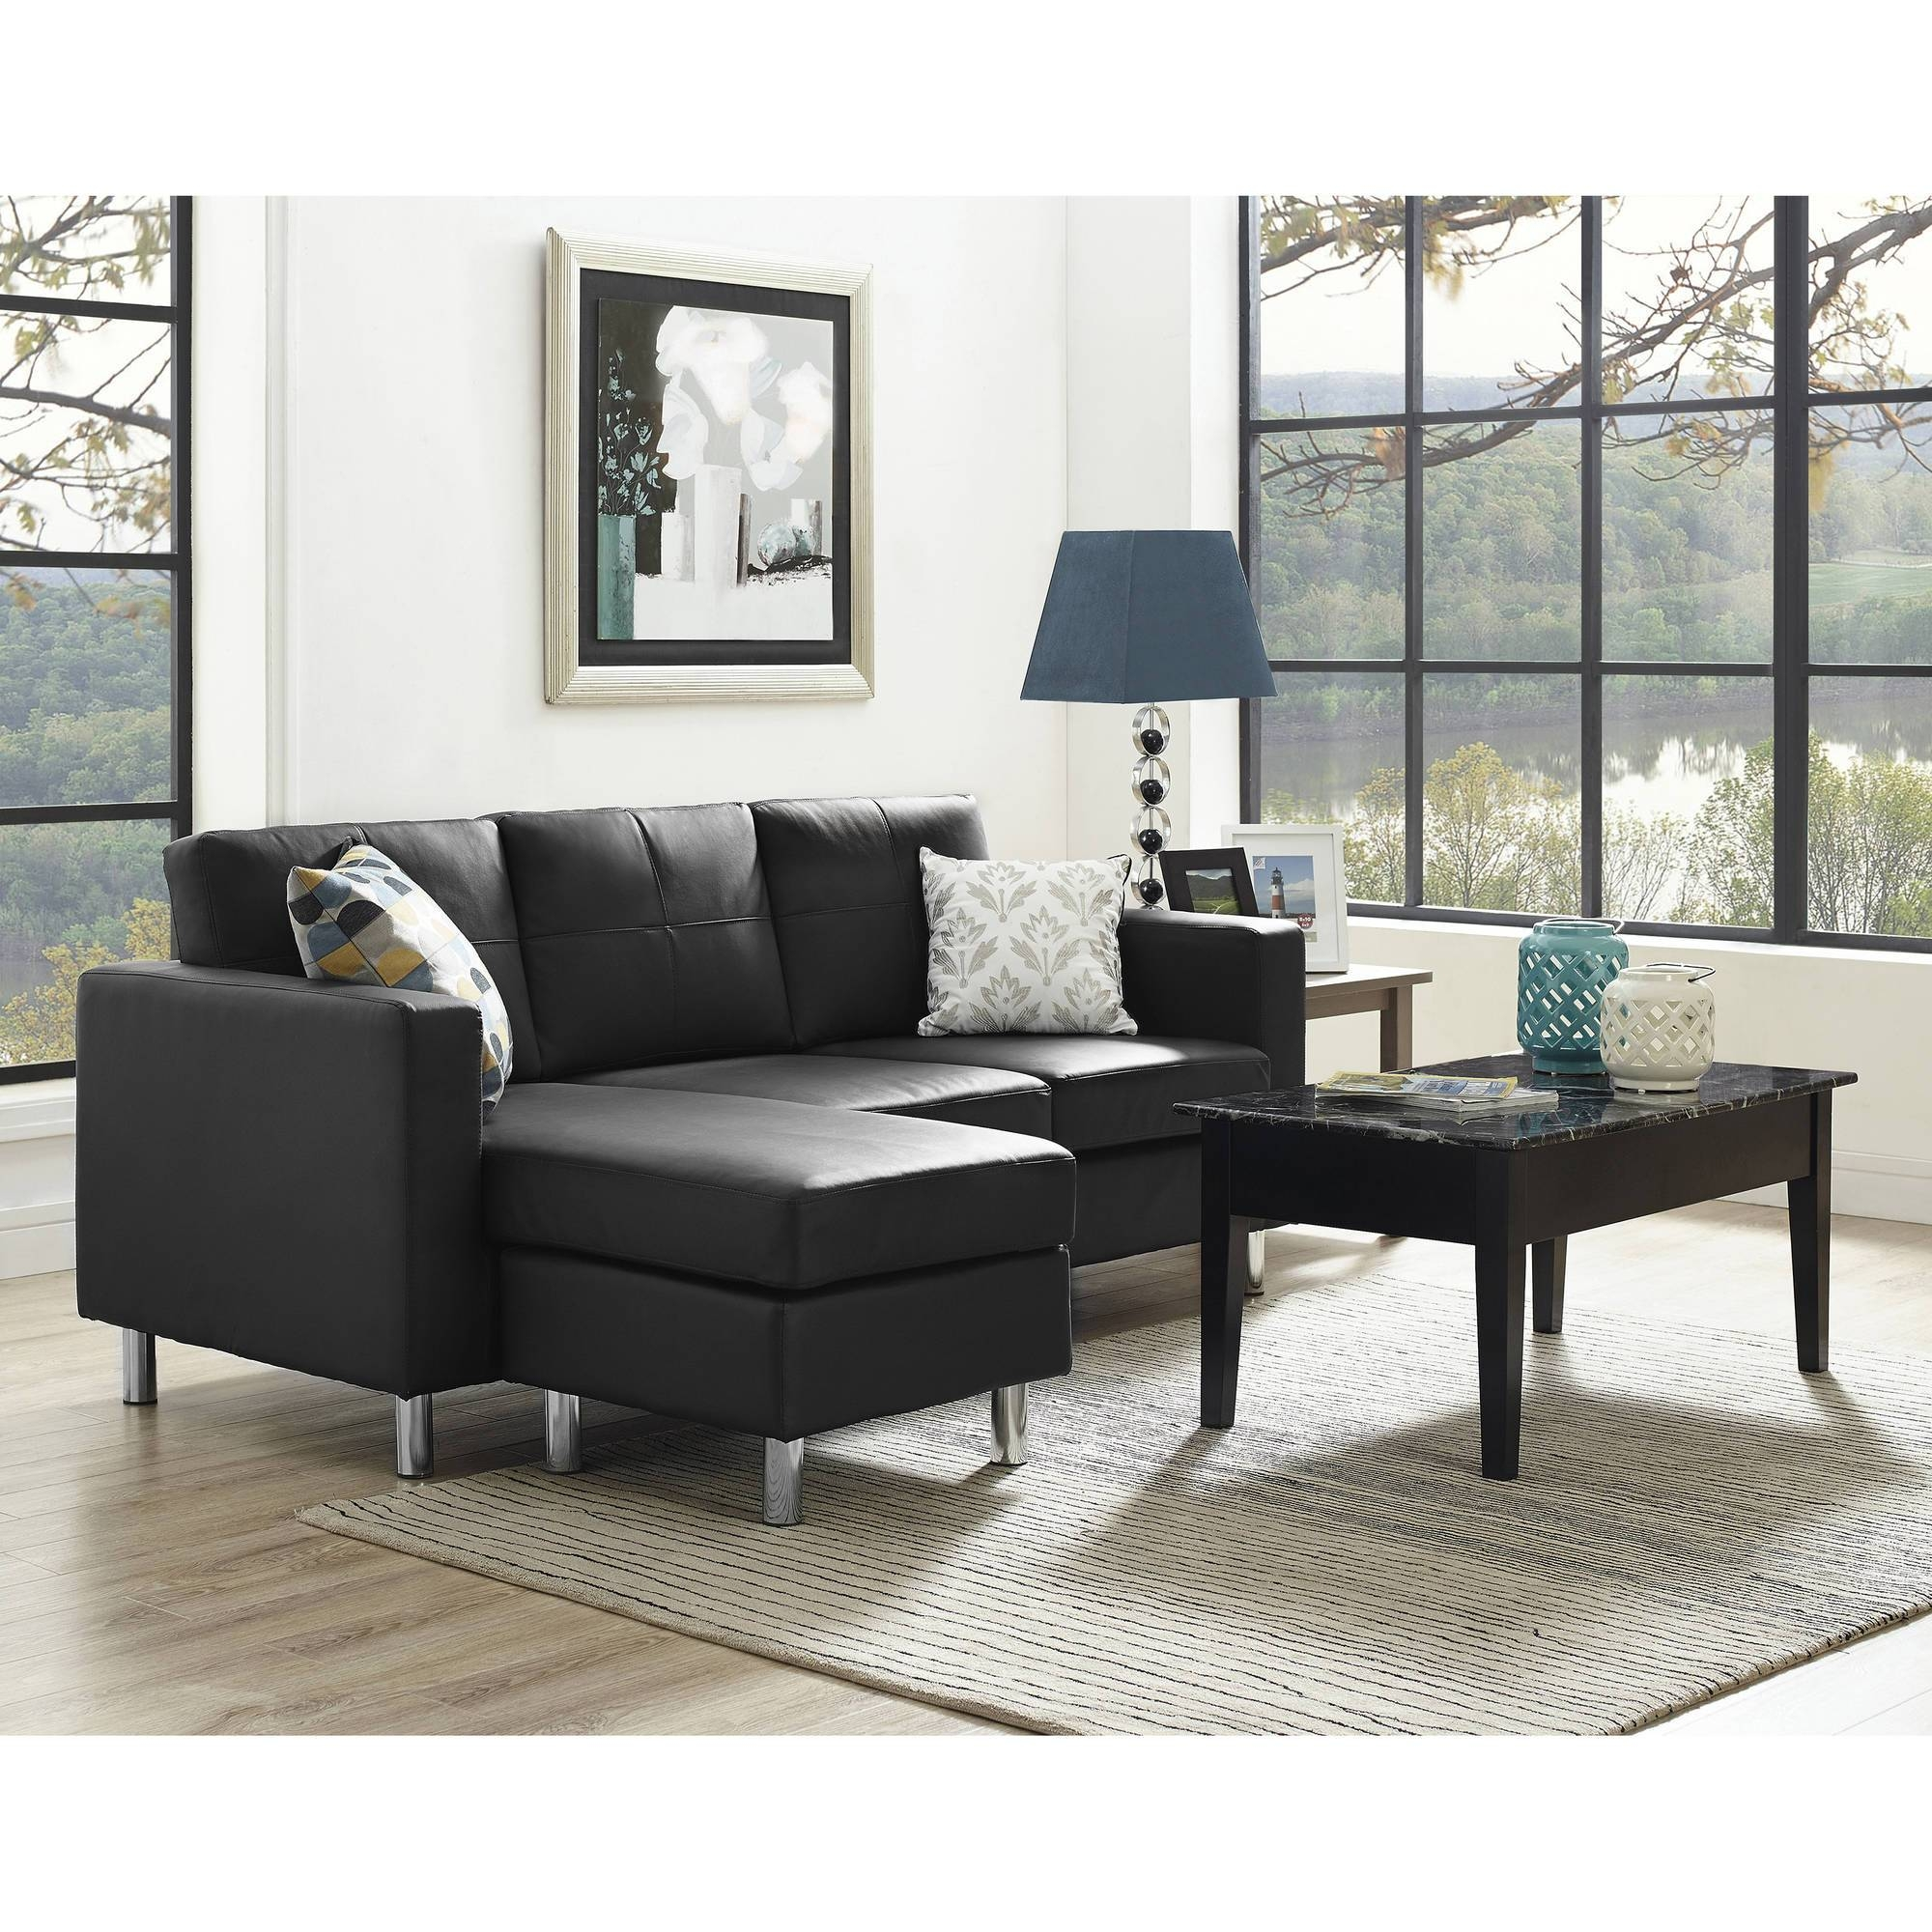 Dorel Living Small Spaces Configurable Sectional Sofa, Multiple with Condo Sectional Sofas (Image 9 of 30)